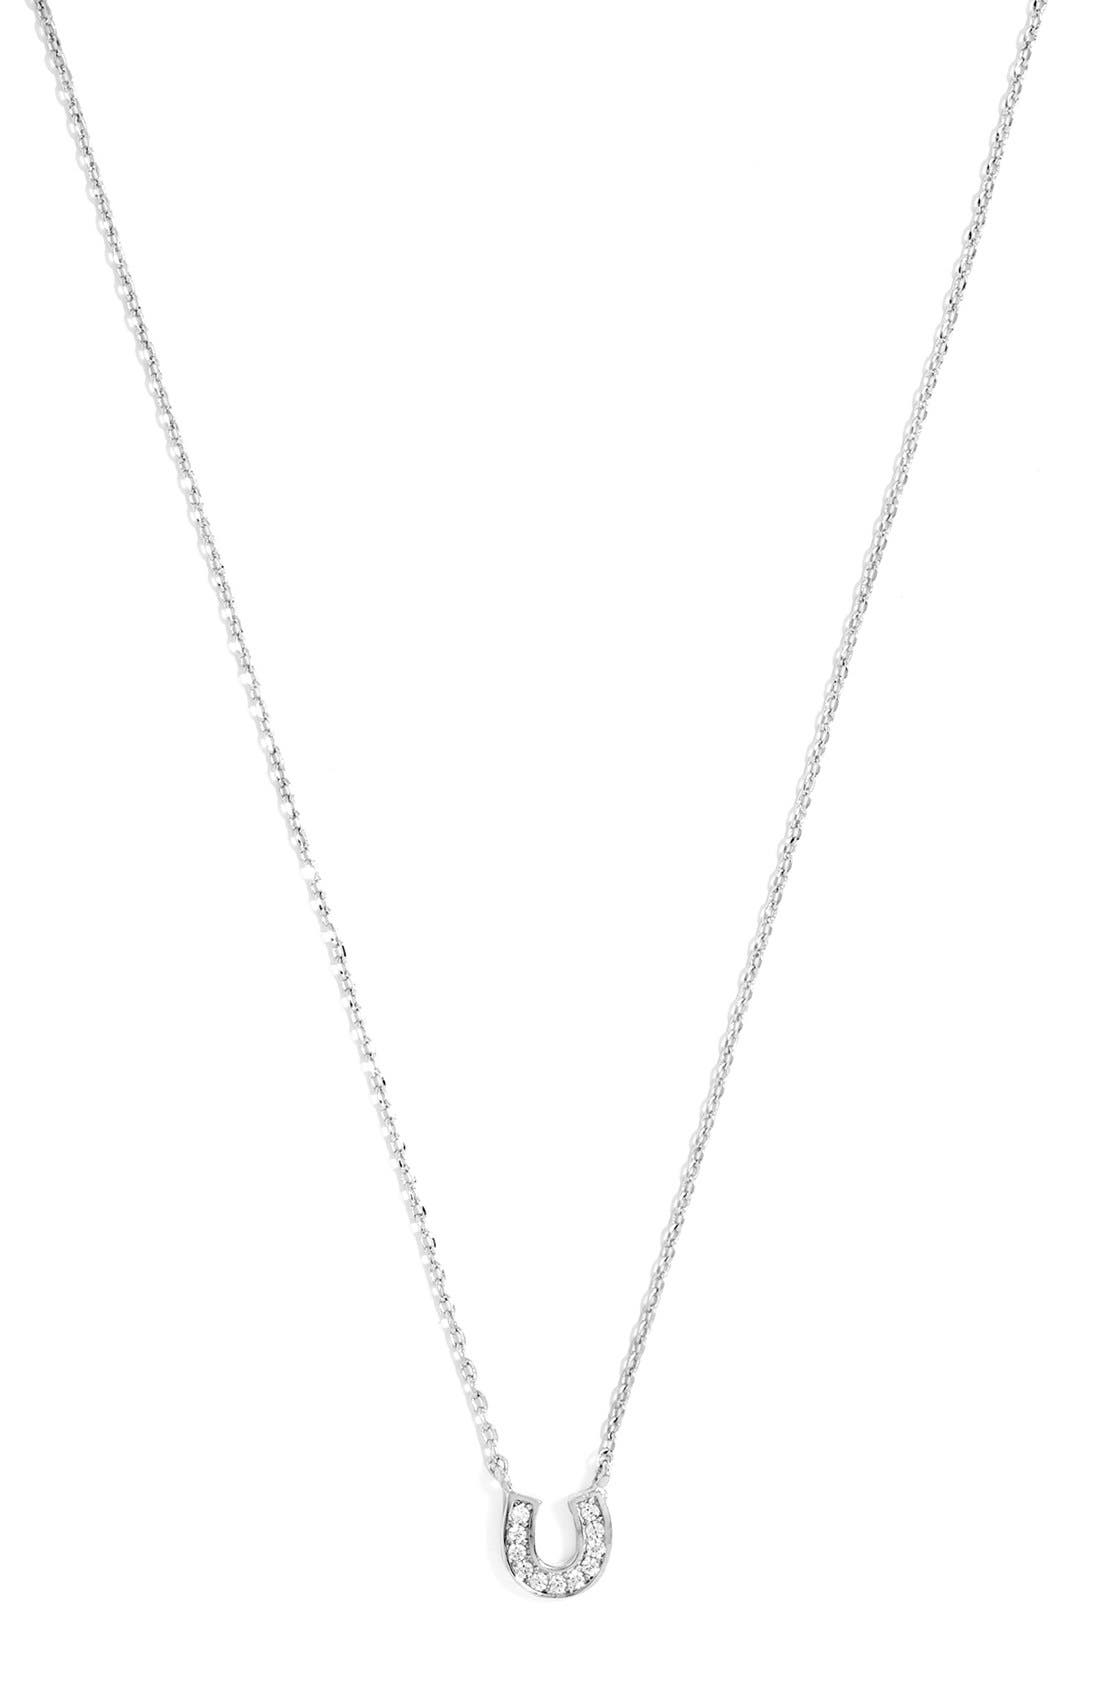 Alternate Image 1 Selected - BaubleBar 'Ice' Horseshoe Pendant Necklace (Online Only)